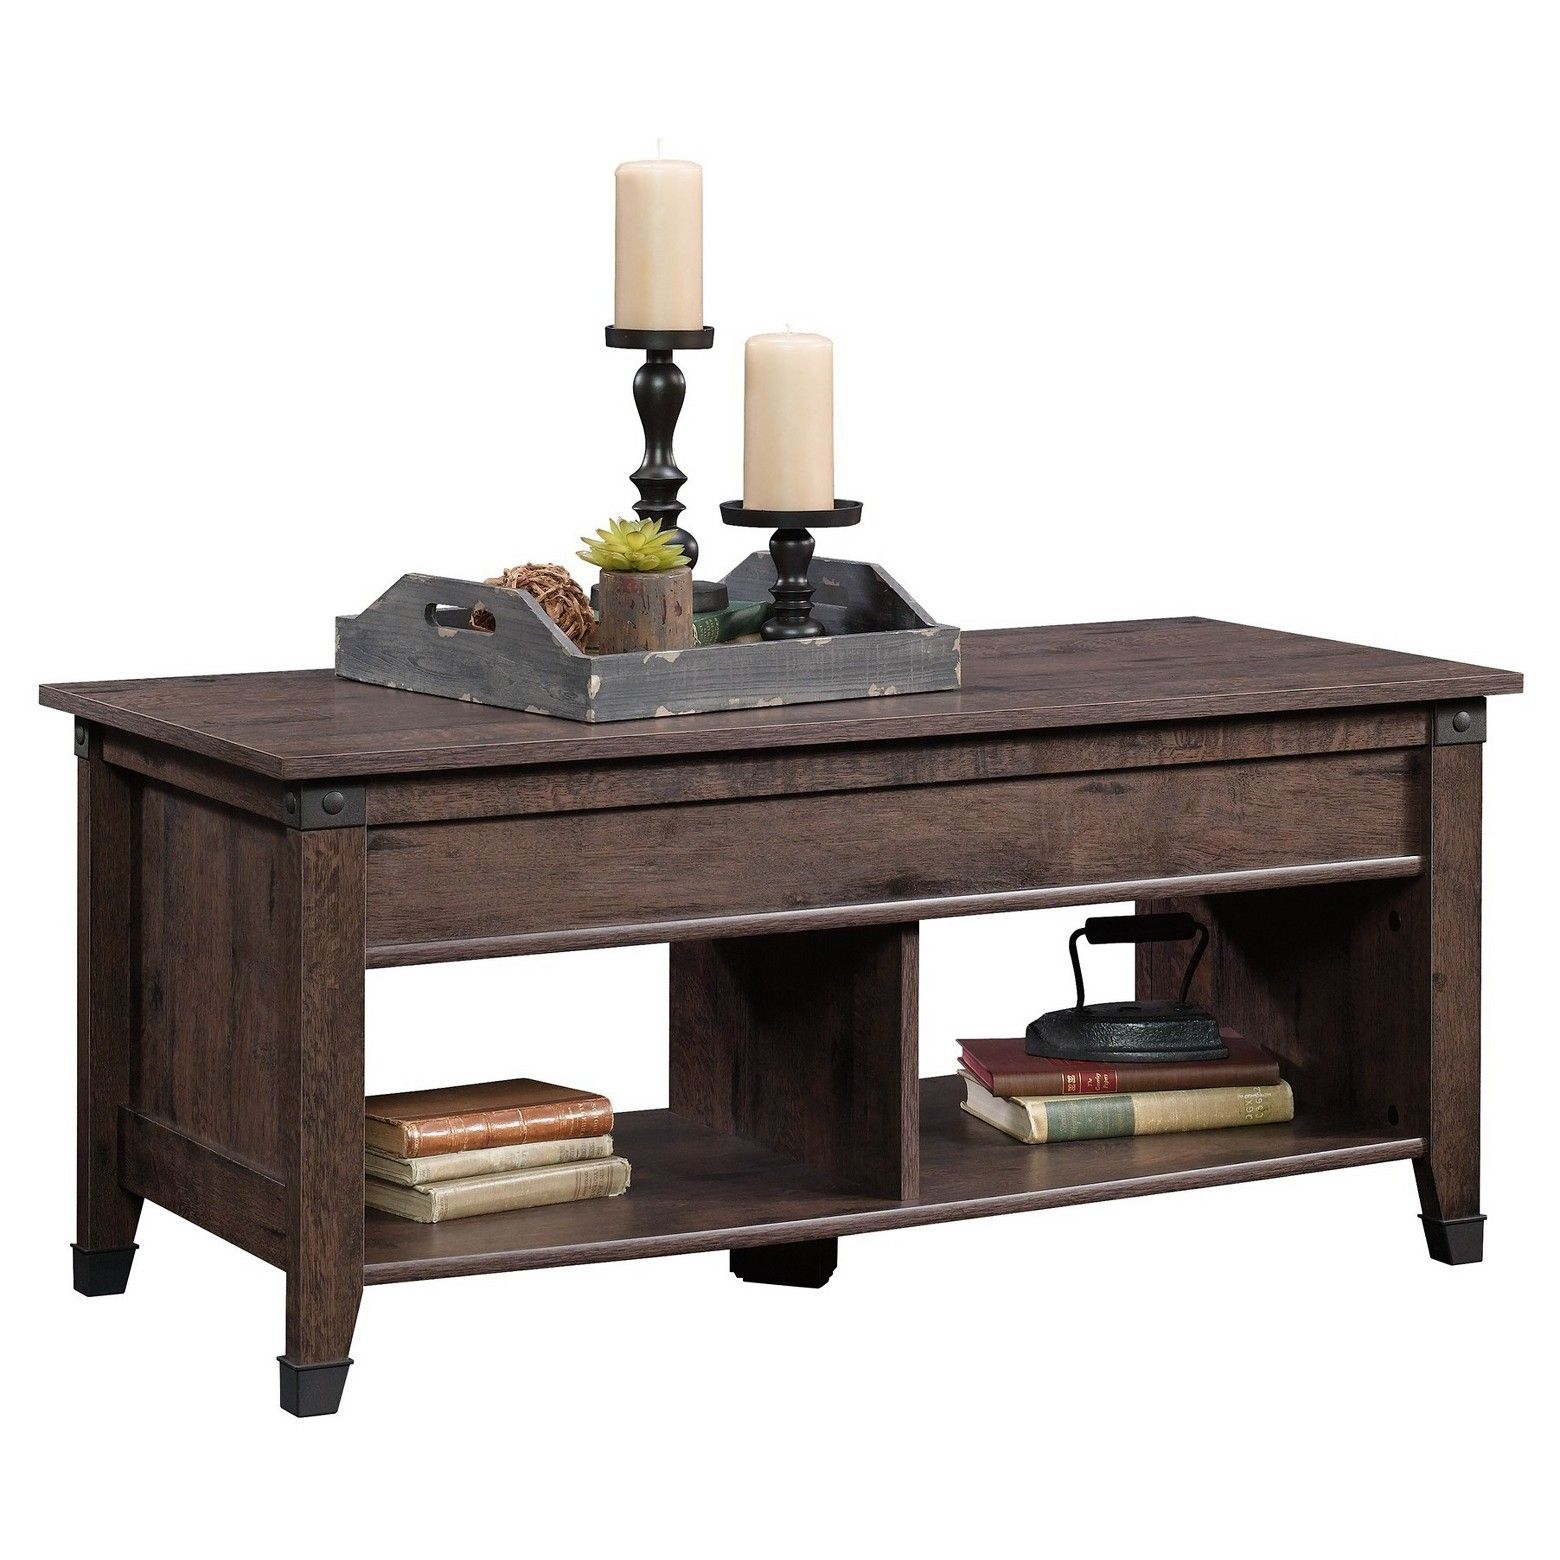 Carson Forge Lift Top Coffee Table Dark Brown Sauder Lift Top Coffee Table Coffee Table Wood Coffee Table [ 1560 x 1560 Pixel ]